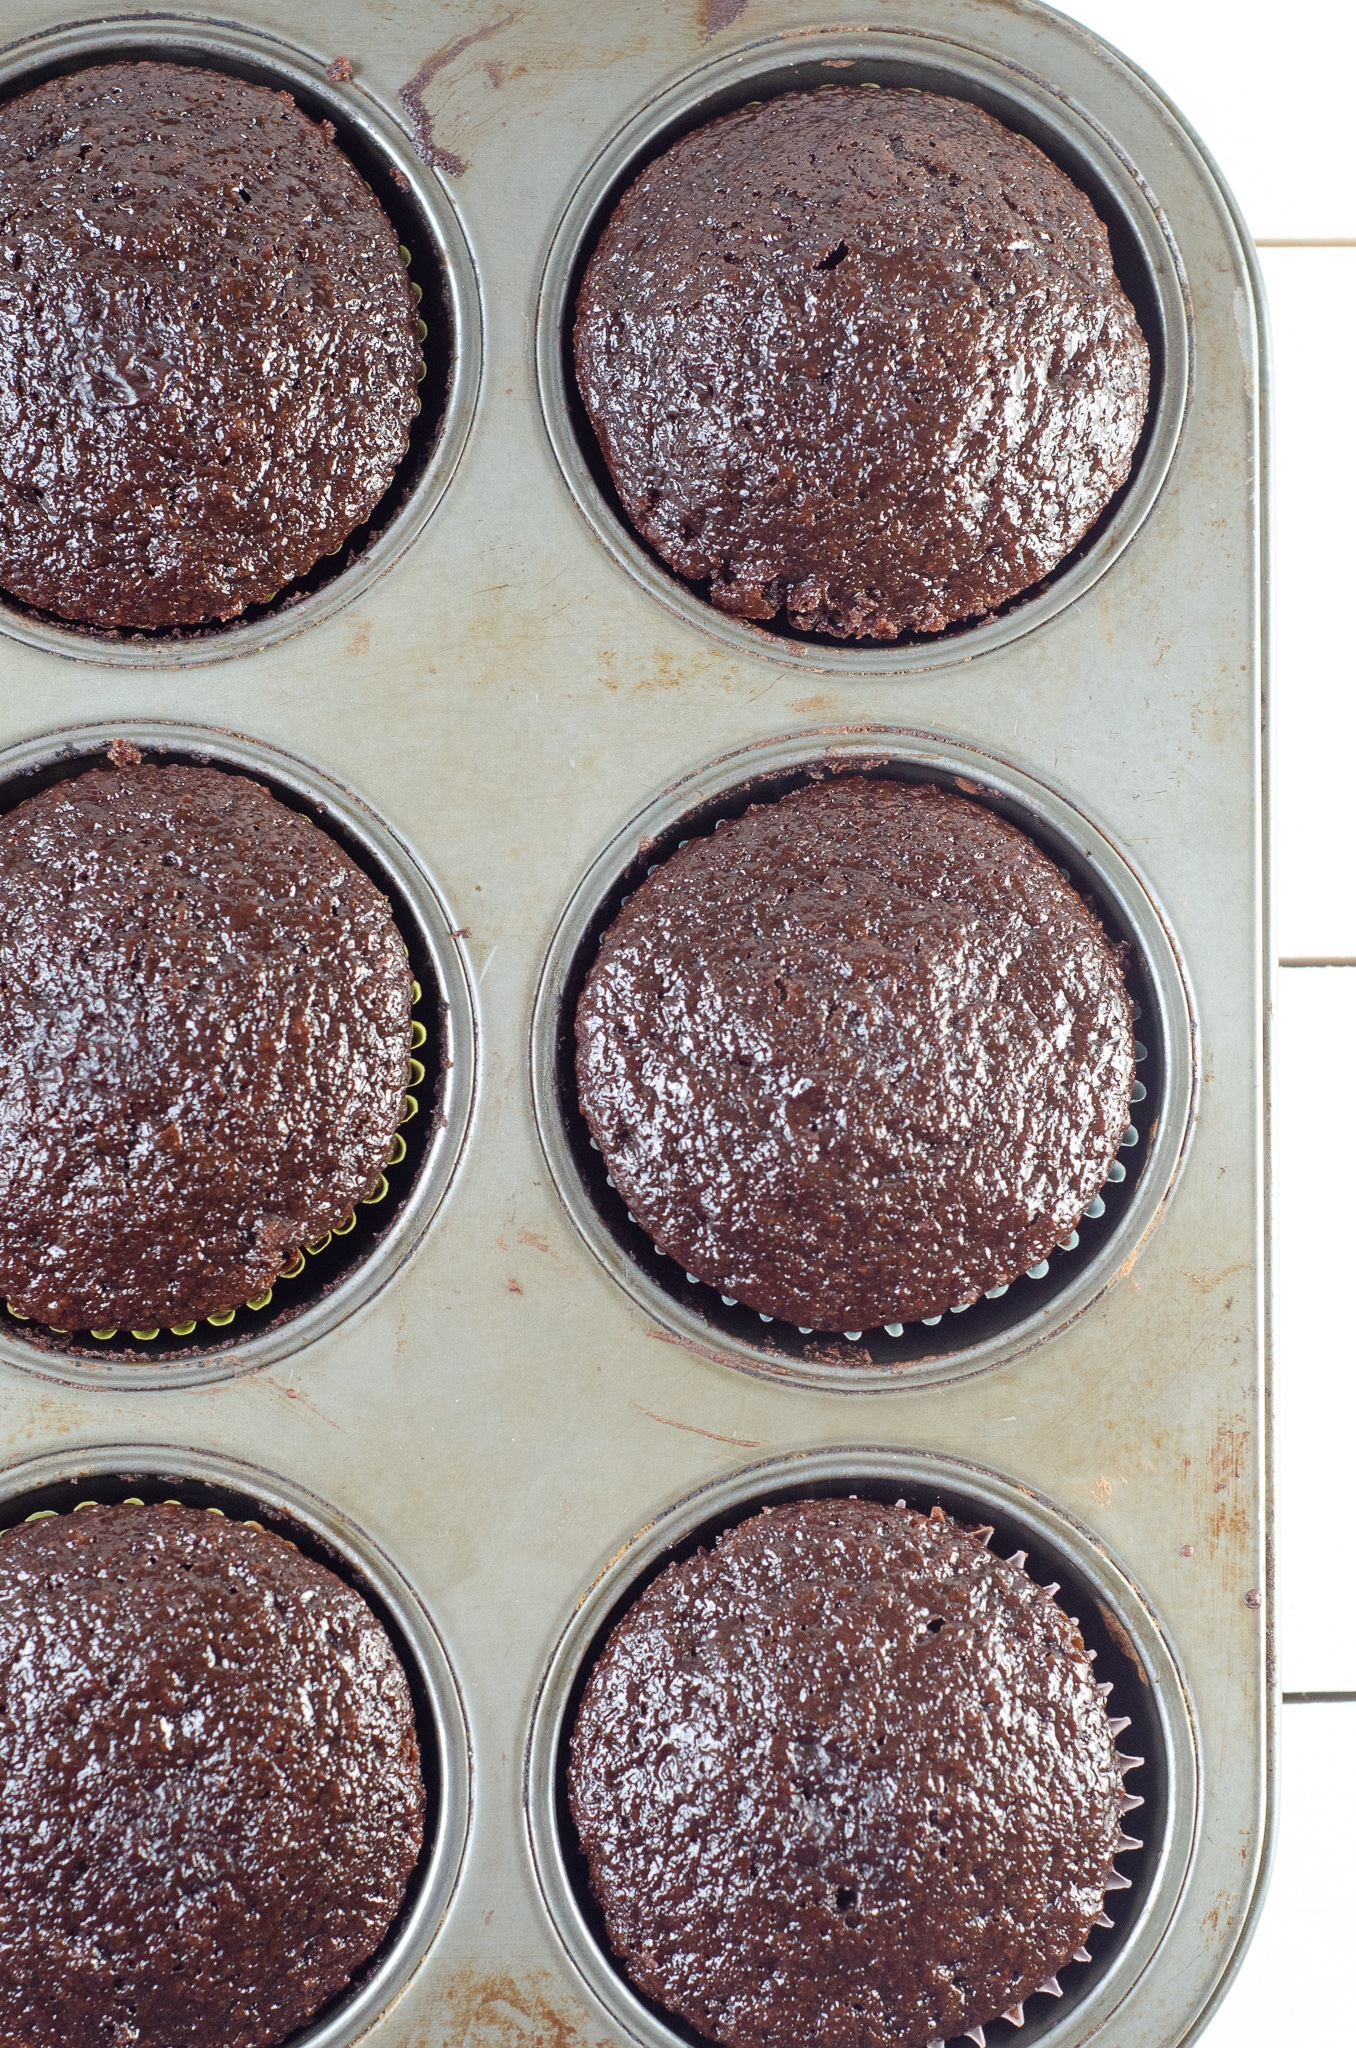 Chocolate Cupcakes In Pan. Sink your teeth into a childhood favorite cupcake that is as easy to bake as it is to eat. My Chocolate cupcakes with Chocolate Buttercream frosting and marshmallow creme filling will make the kid in you cheer.